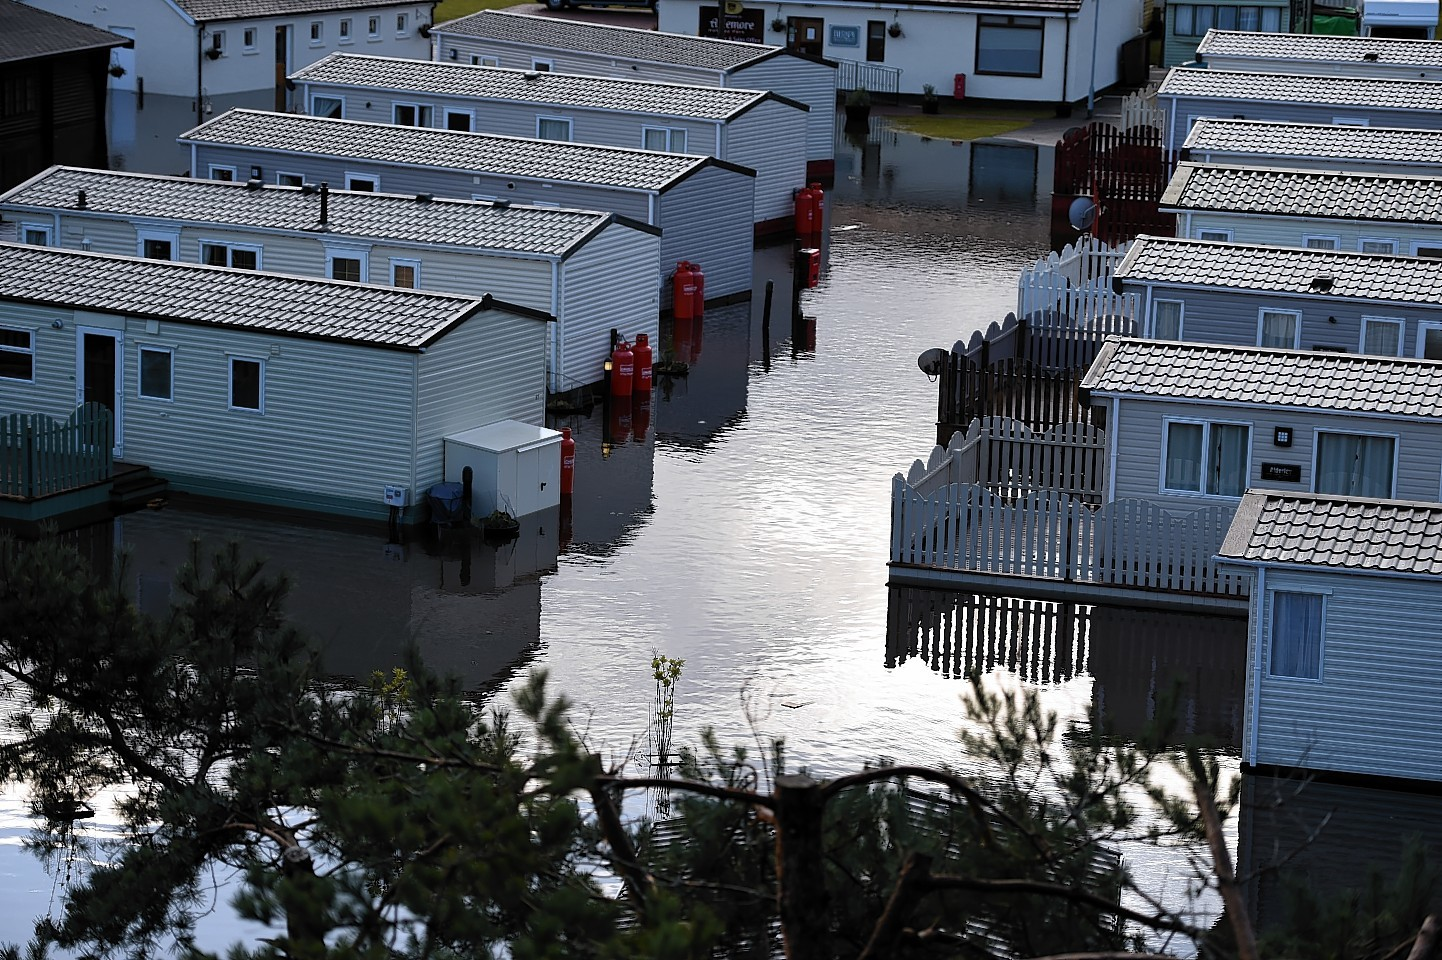 Flooding at the caravan site in Aviemore.Picture by Gordon Lennox 06/12/2015